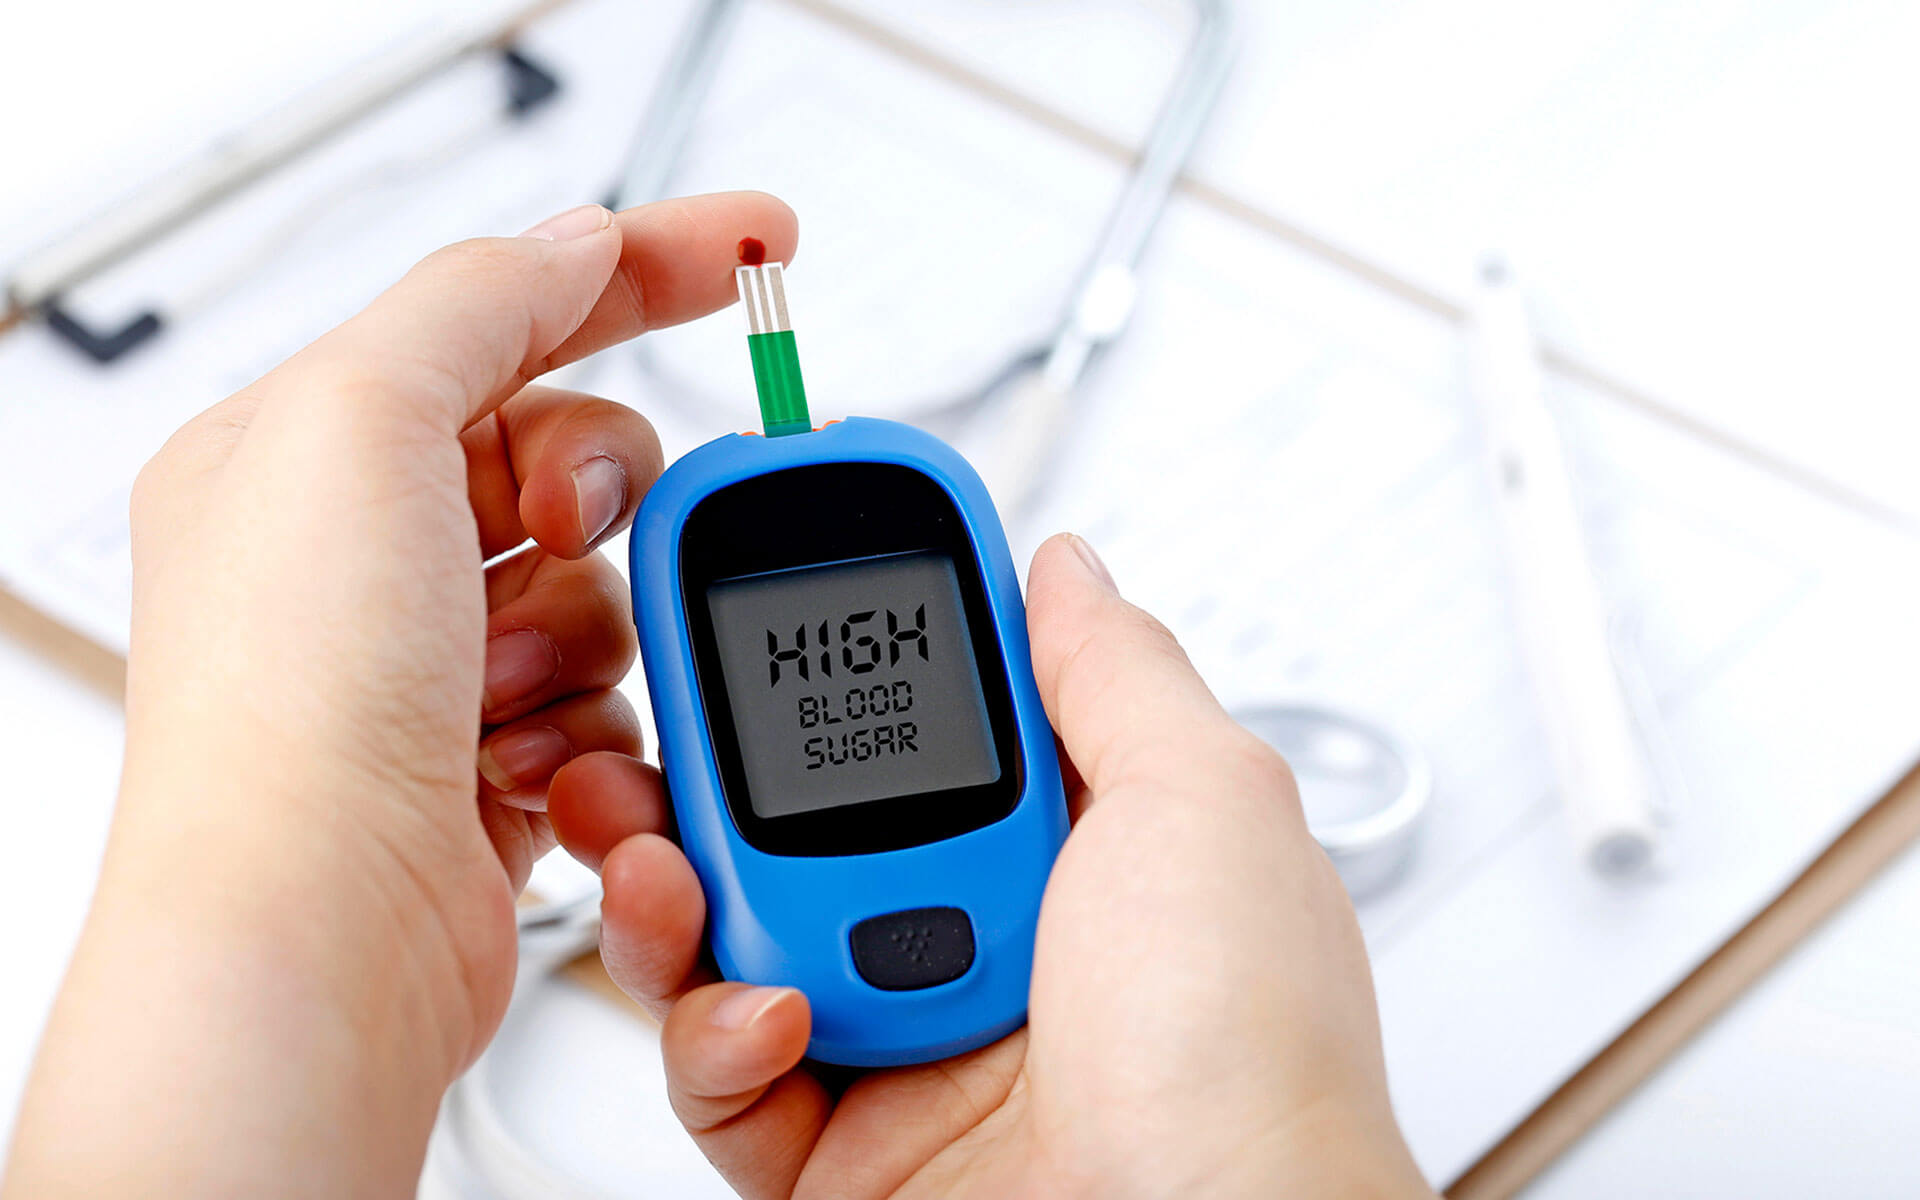 Tested positive for high blood sugar - What Is Diabetes? health and wellness